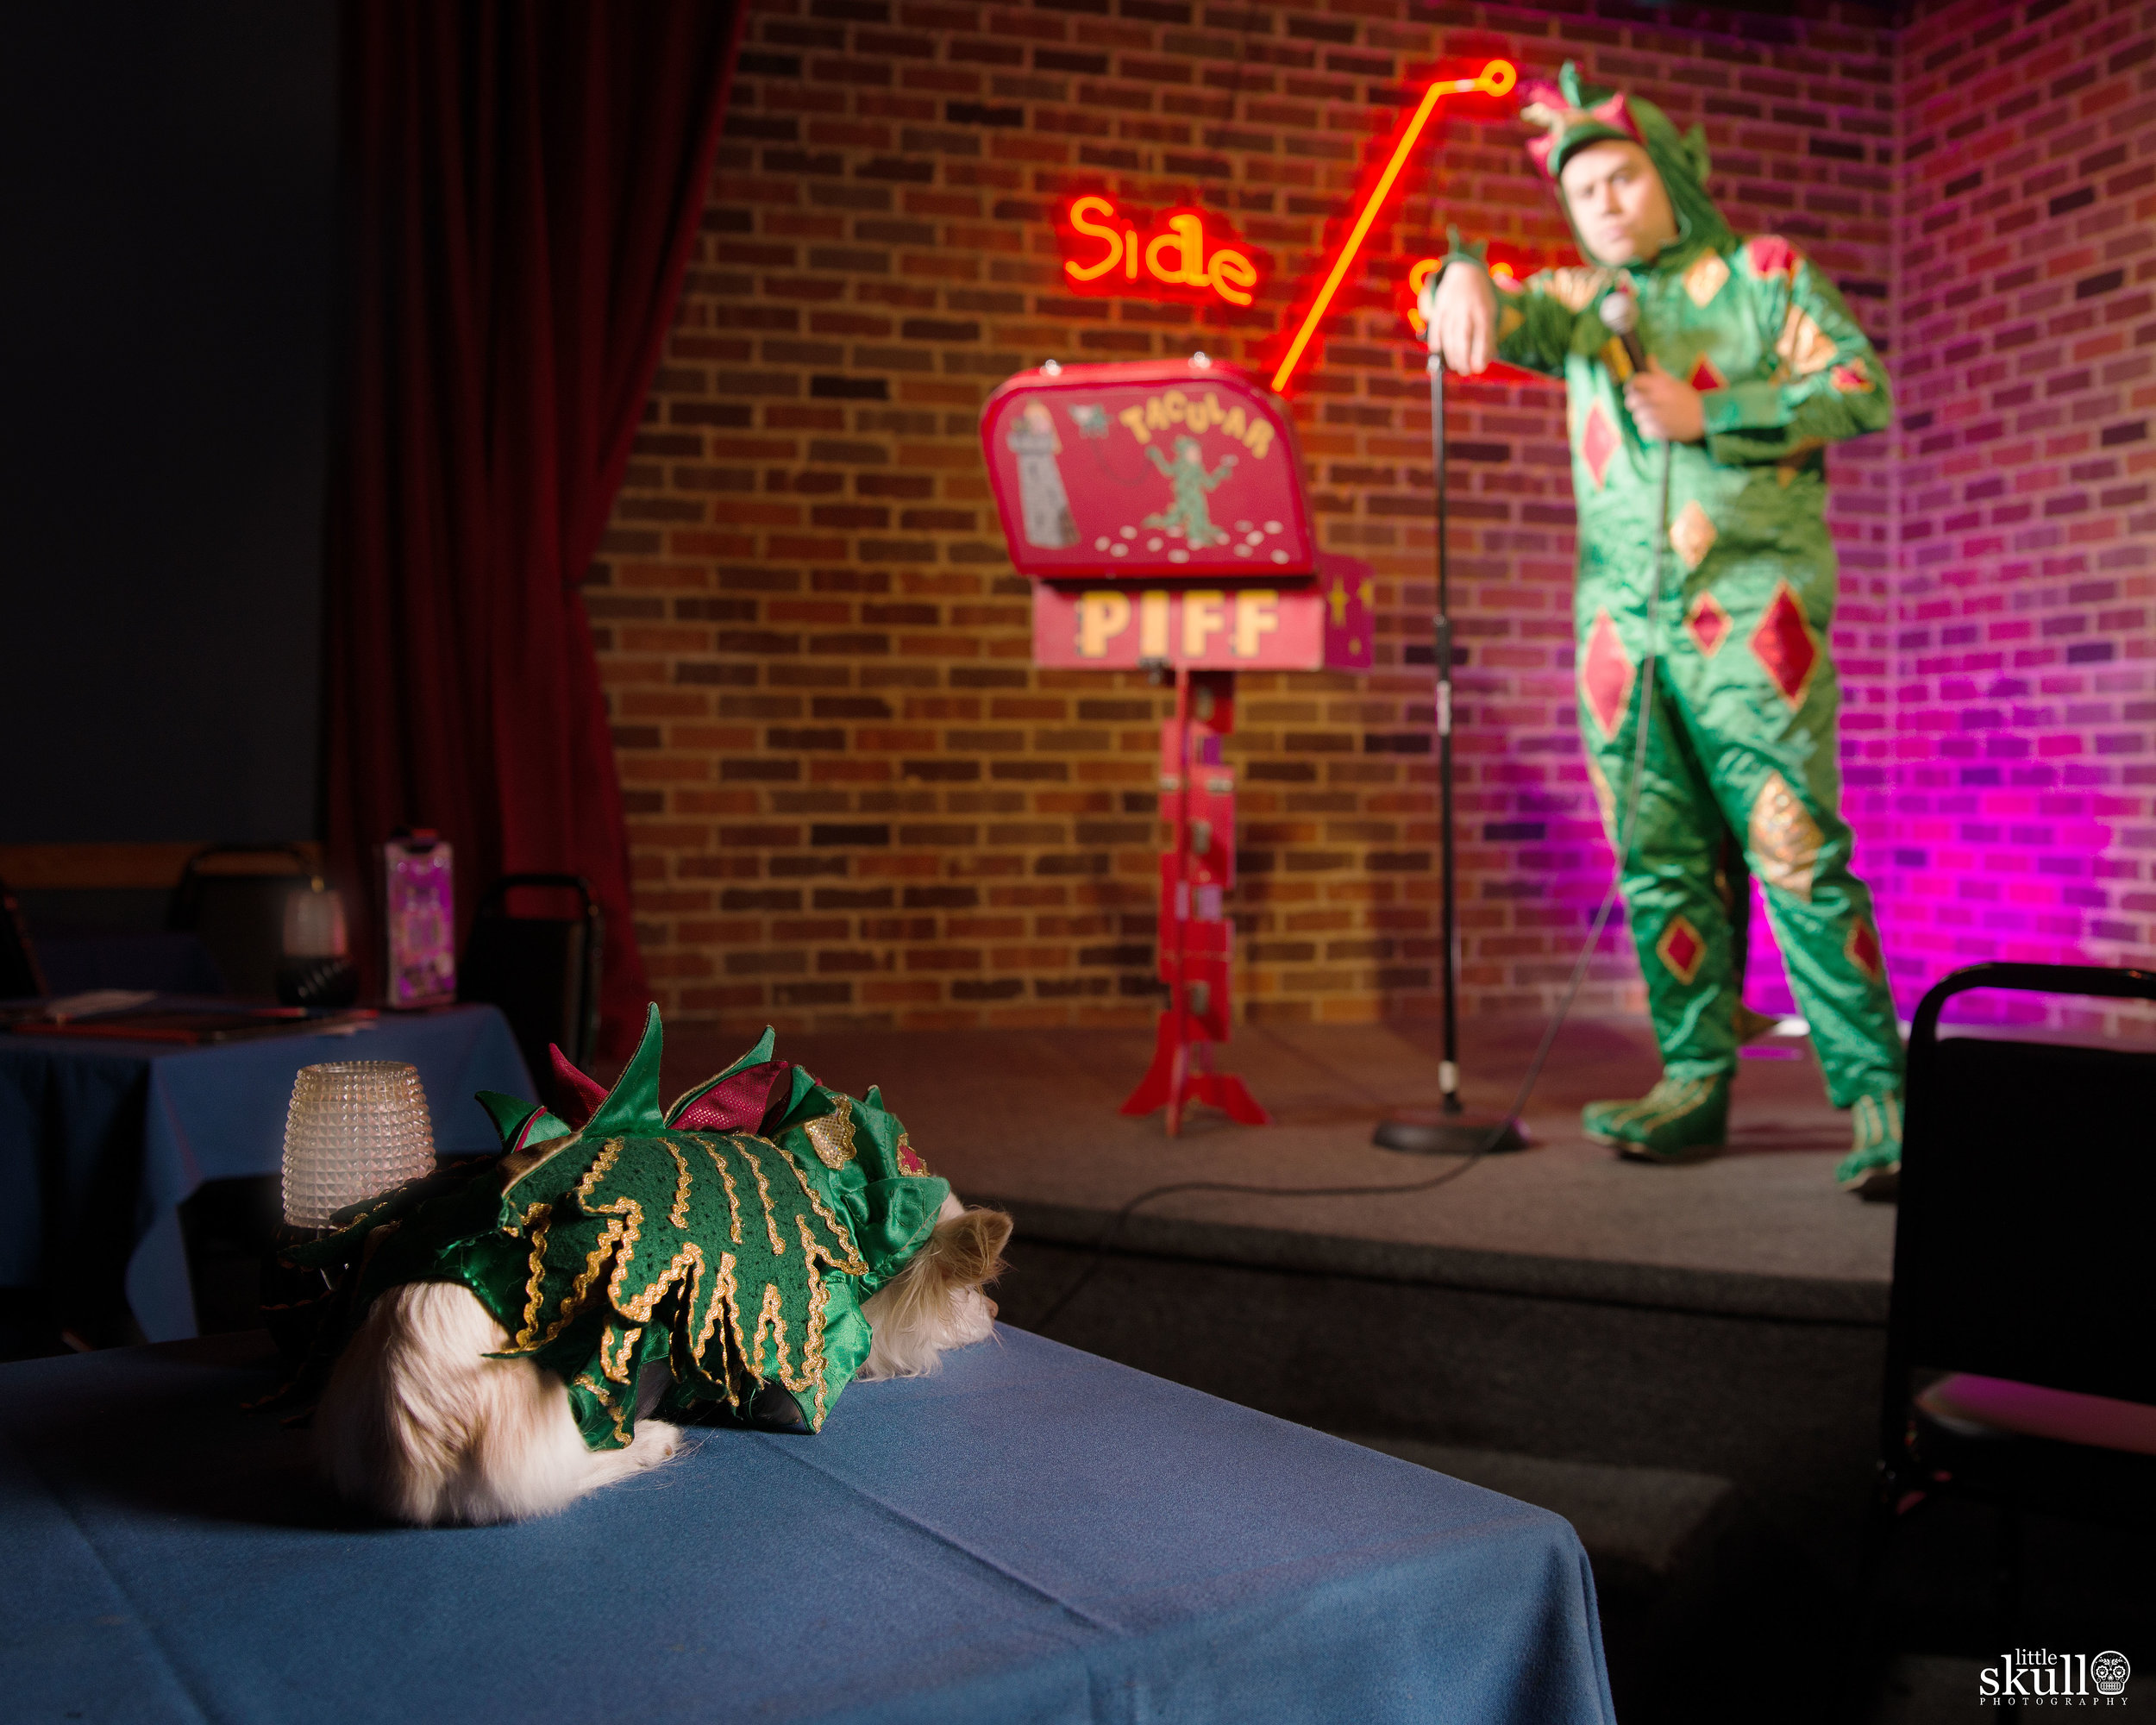 Piff the Magic Dragon preforms on stage for Mr. Piffles by Little Skull Photography